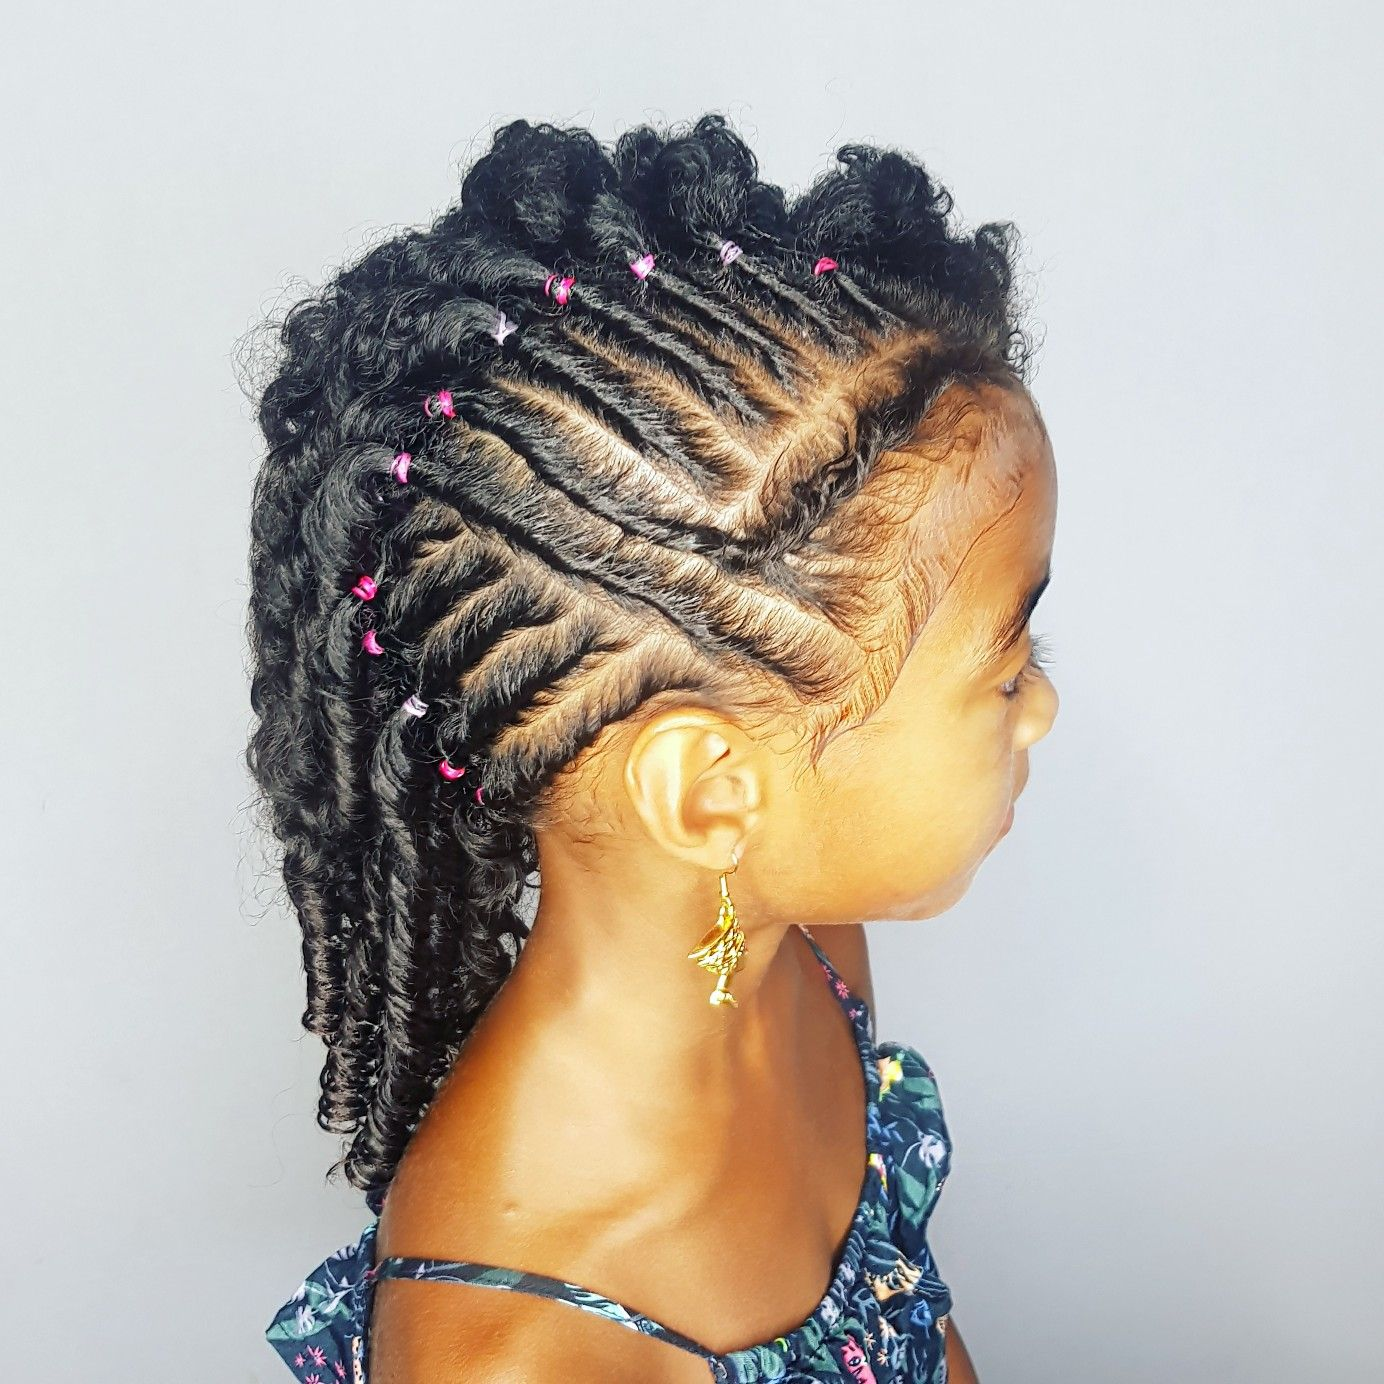 Tuck and roll hairstyles for curly little girls janelleus